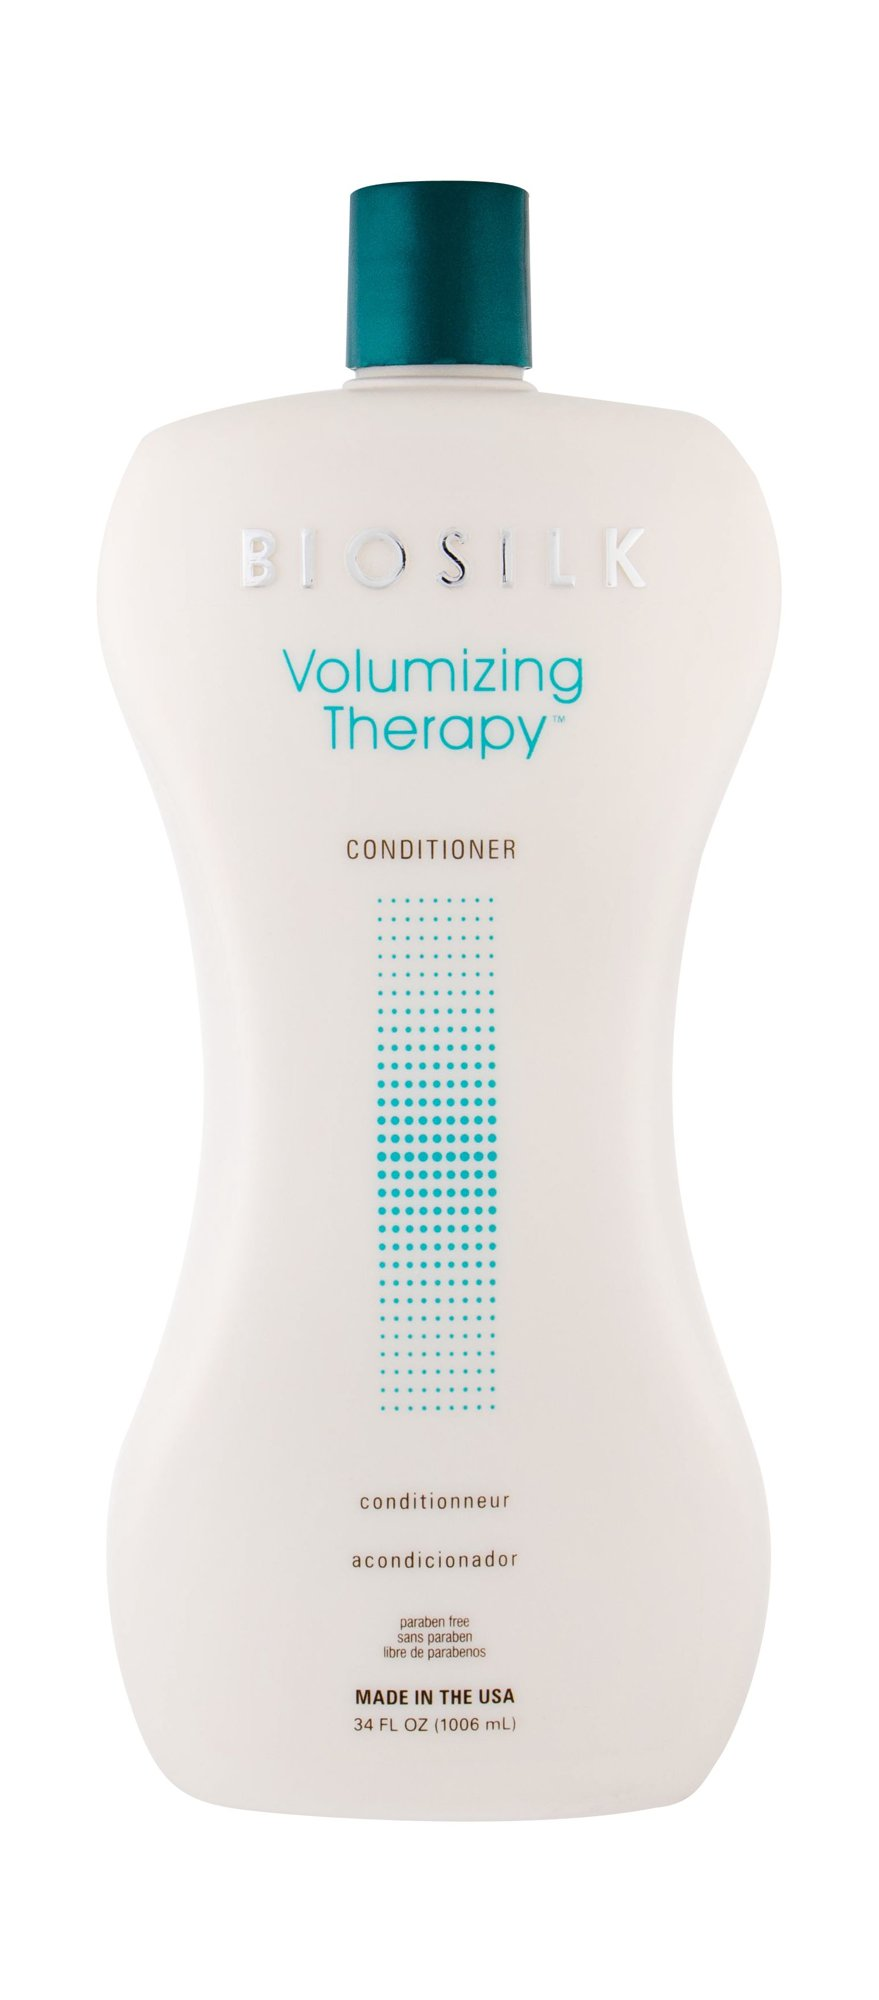 Farouk Systems Biosilk Volumizing Therapy Conditioner 1006ml